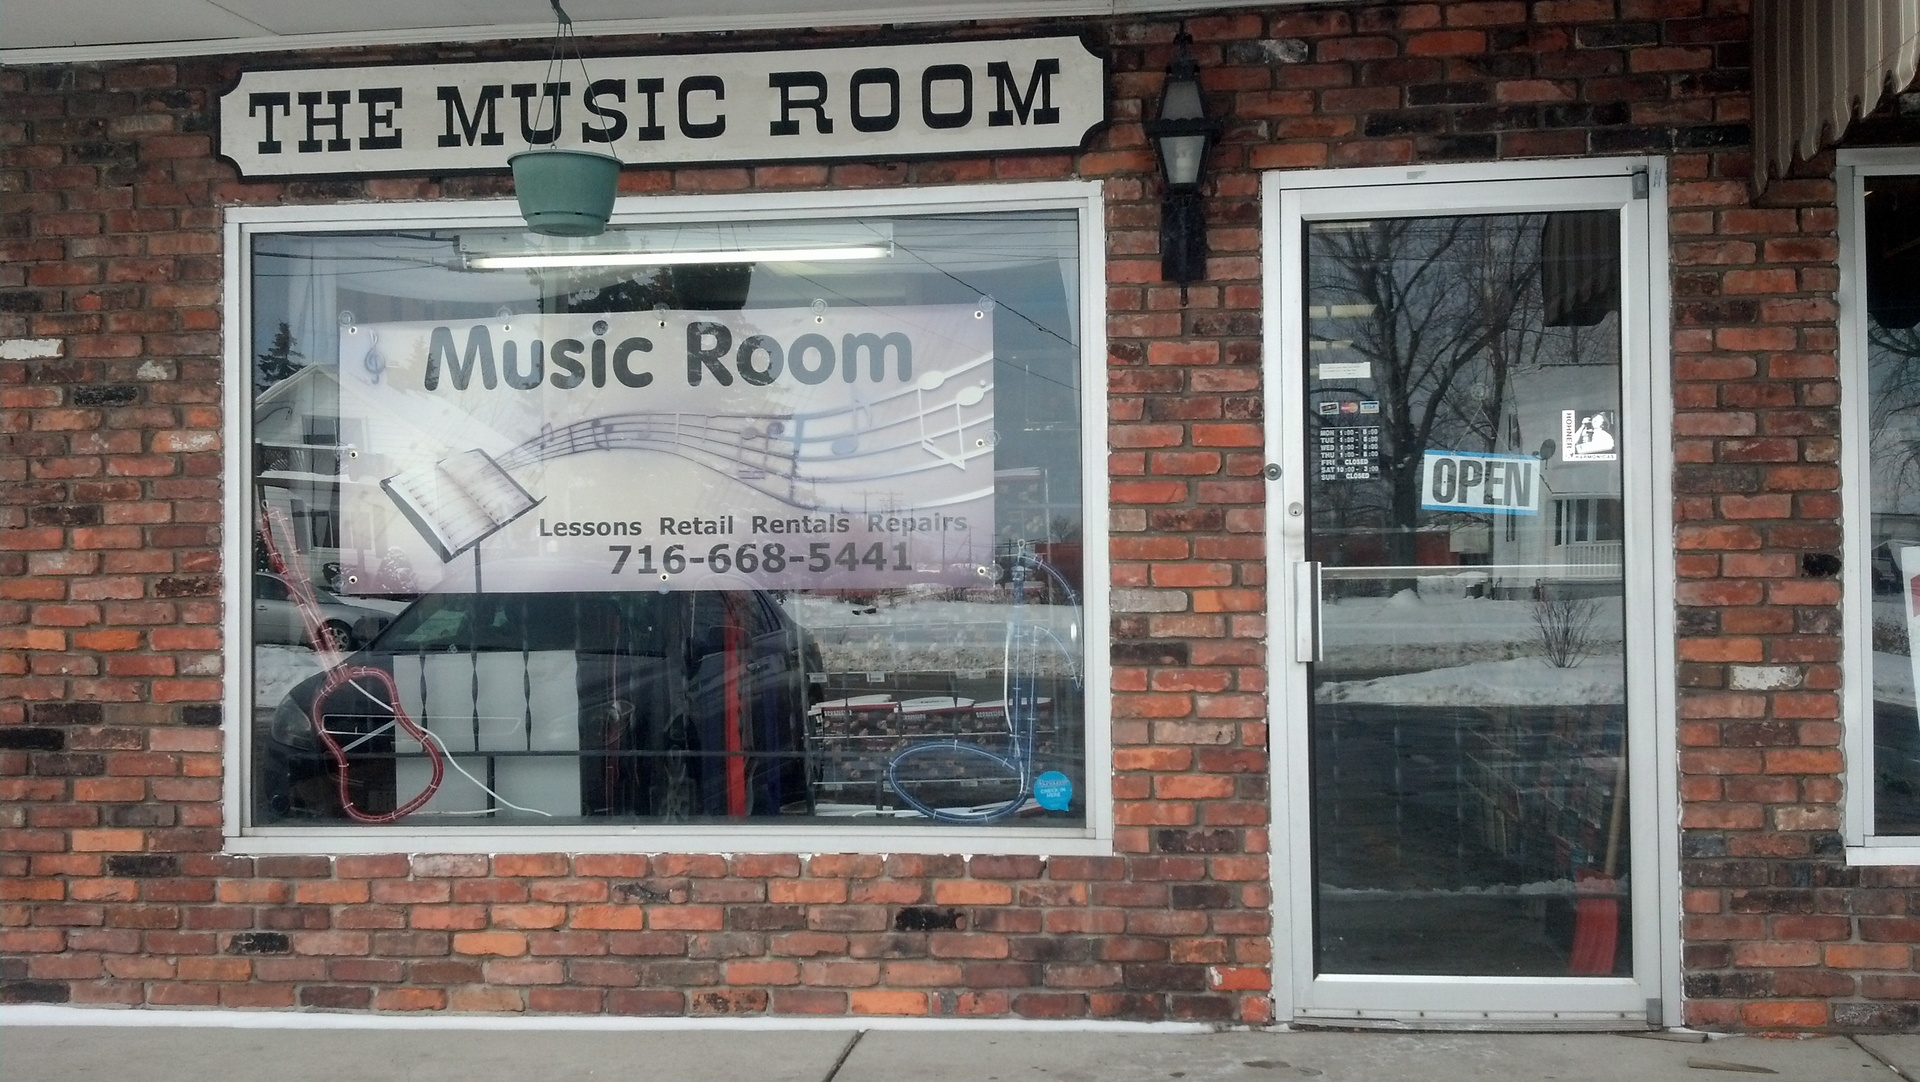 Music Room, 444 Borden Road, Cheektowaga, NY, 14224, United States